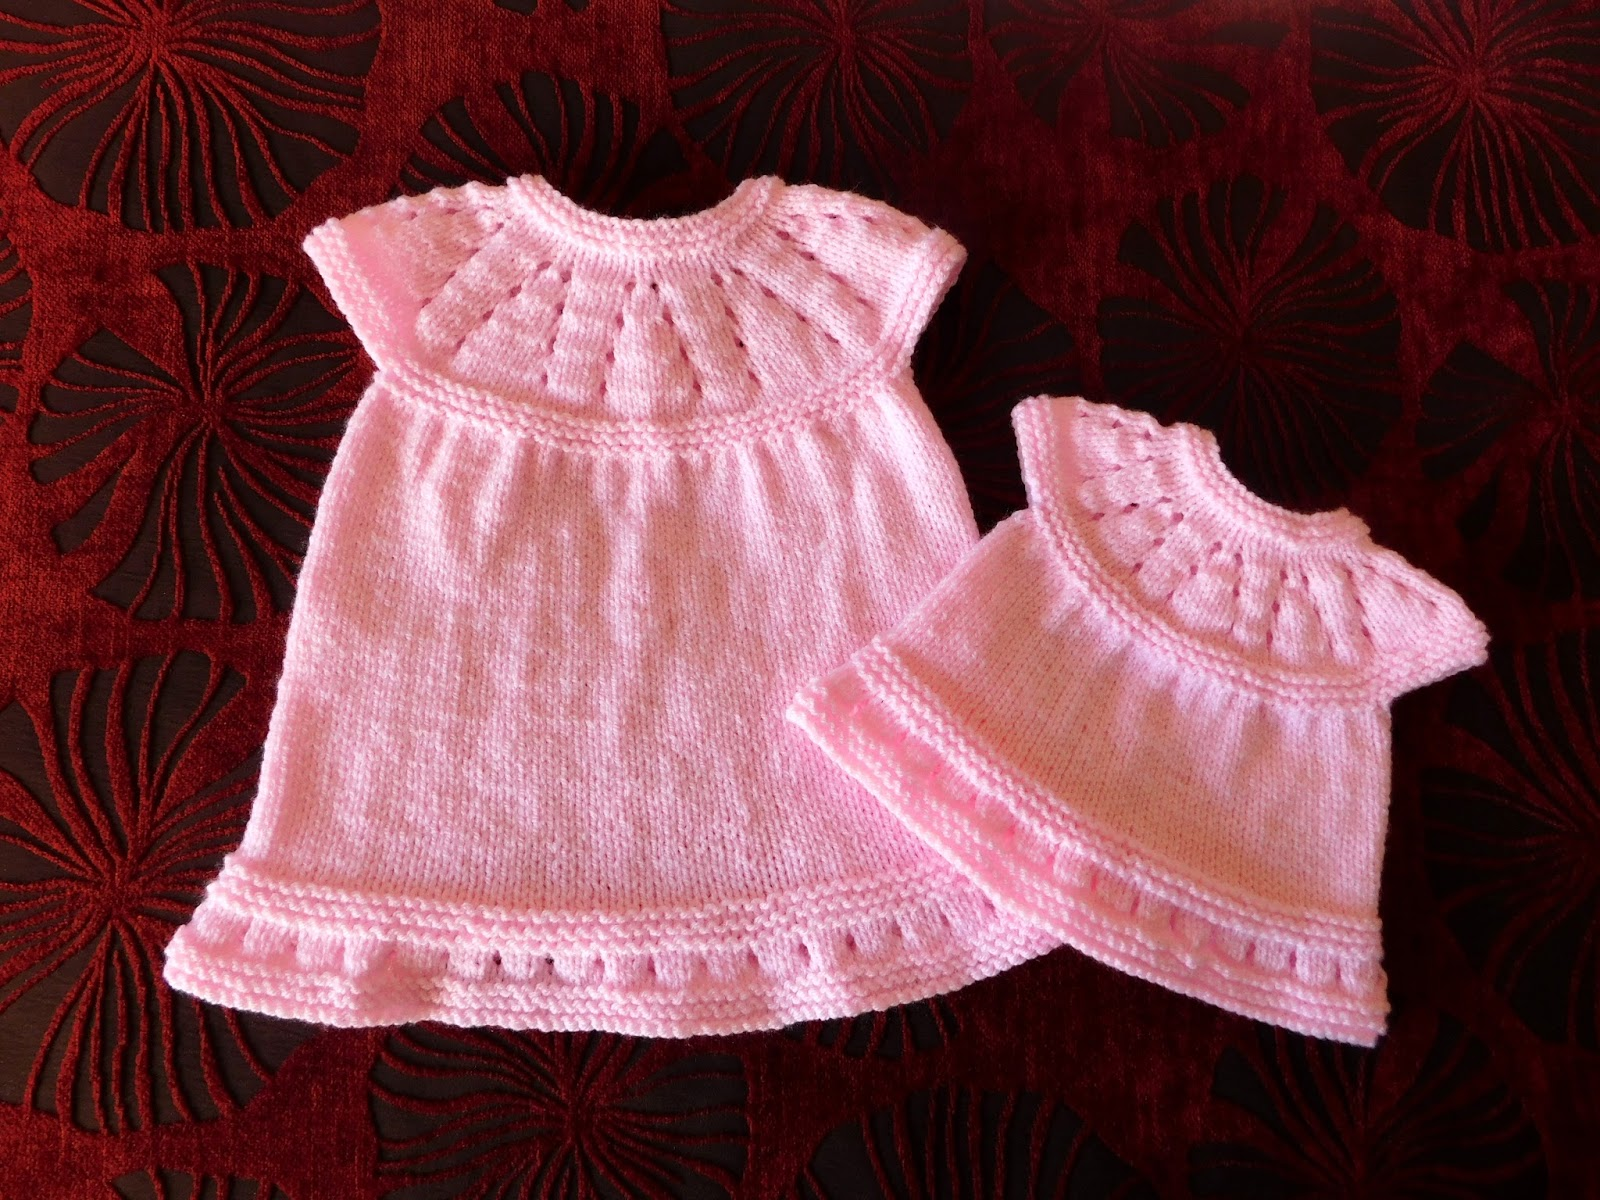 Knitting Pattern Baby All In One : mariannas lazy daisy days: Lazy Daisy All-in-One Baby Dress